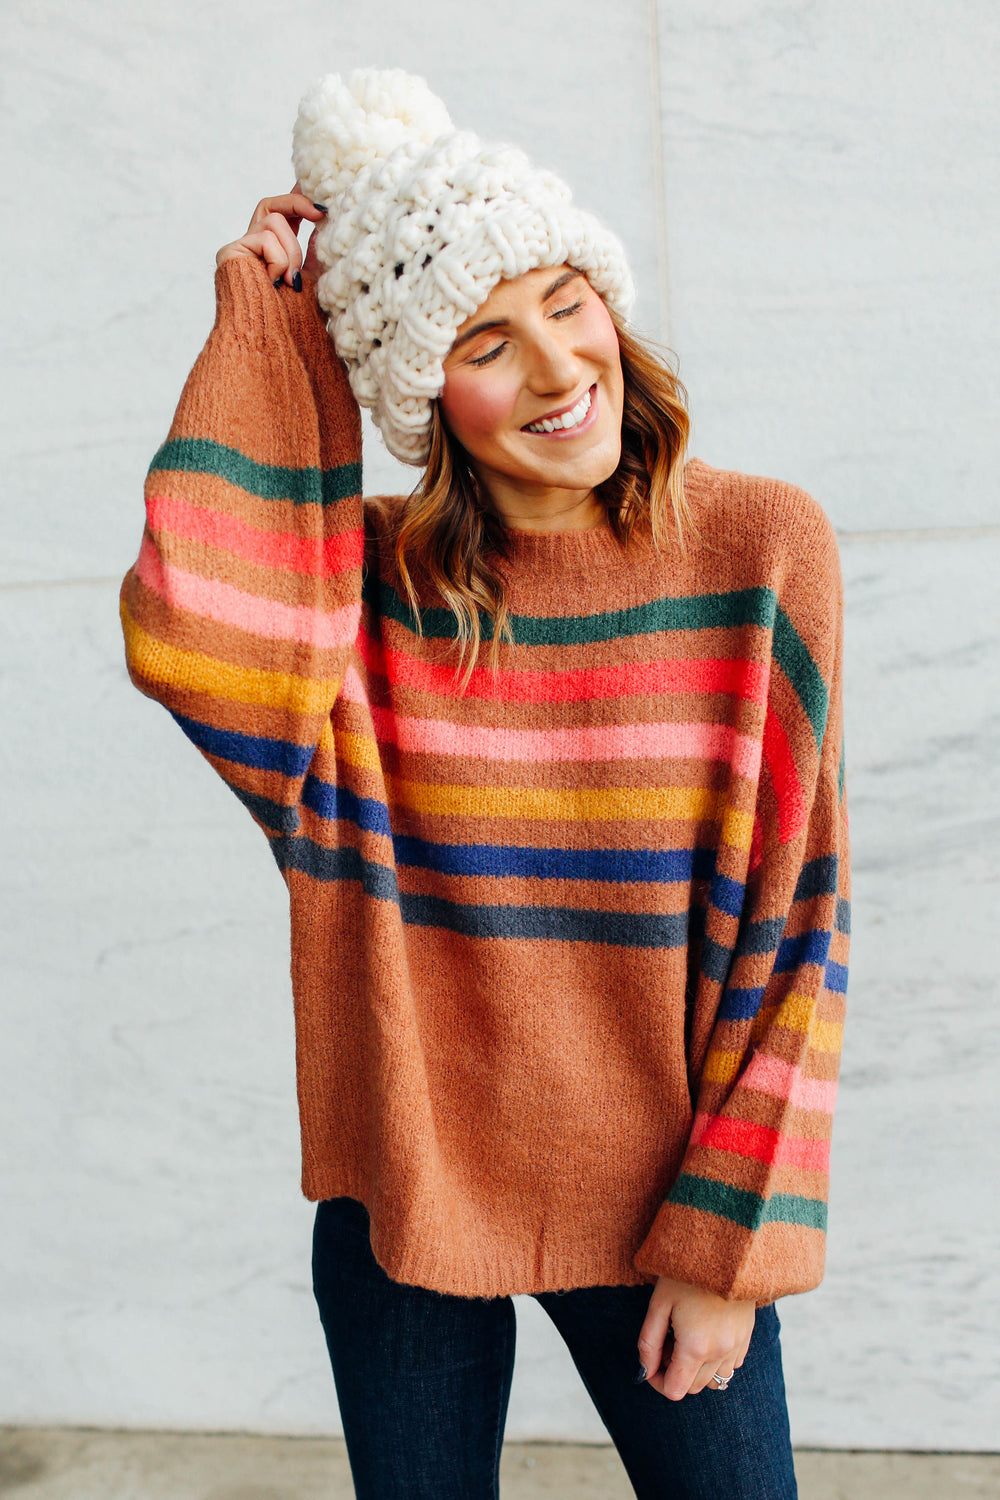 Color Me Striped Sweater Inspired By Ashley from Twenties Girl Style